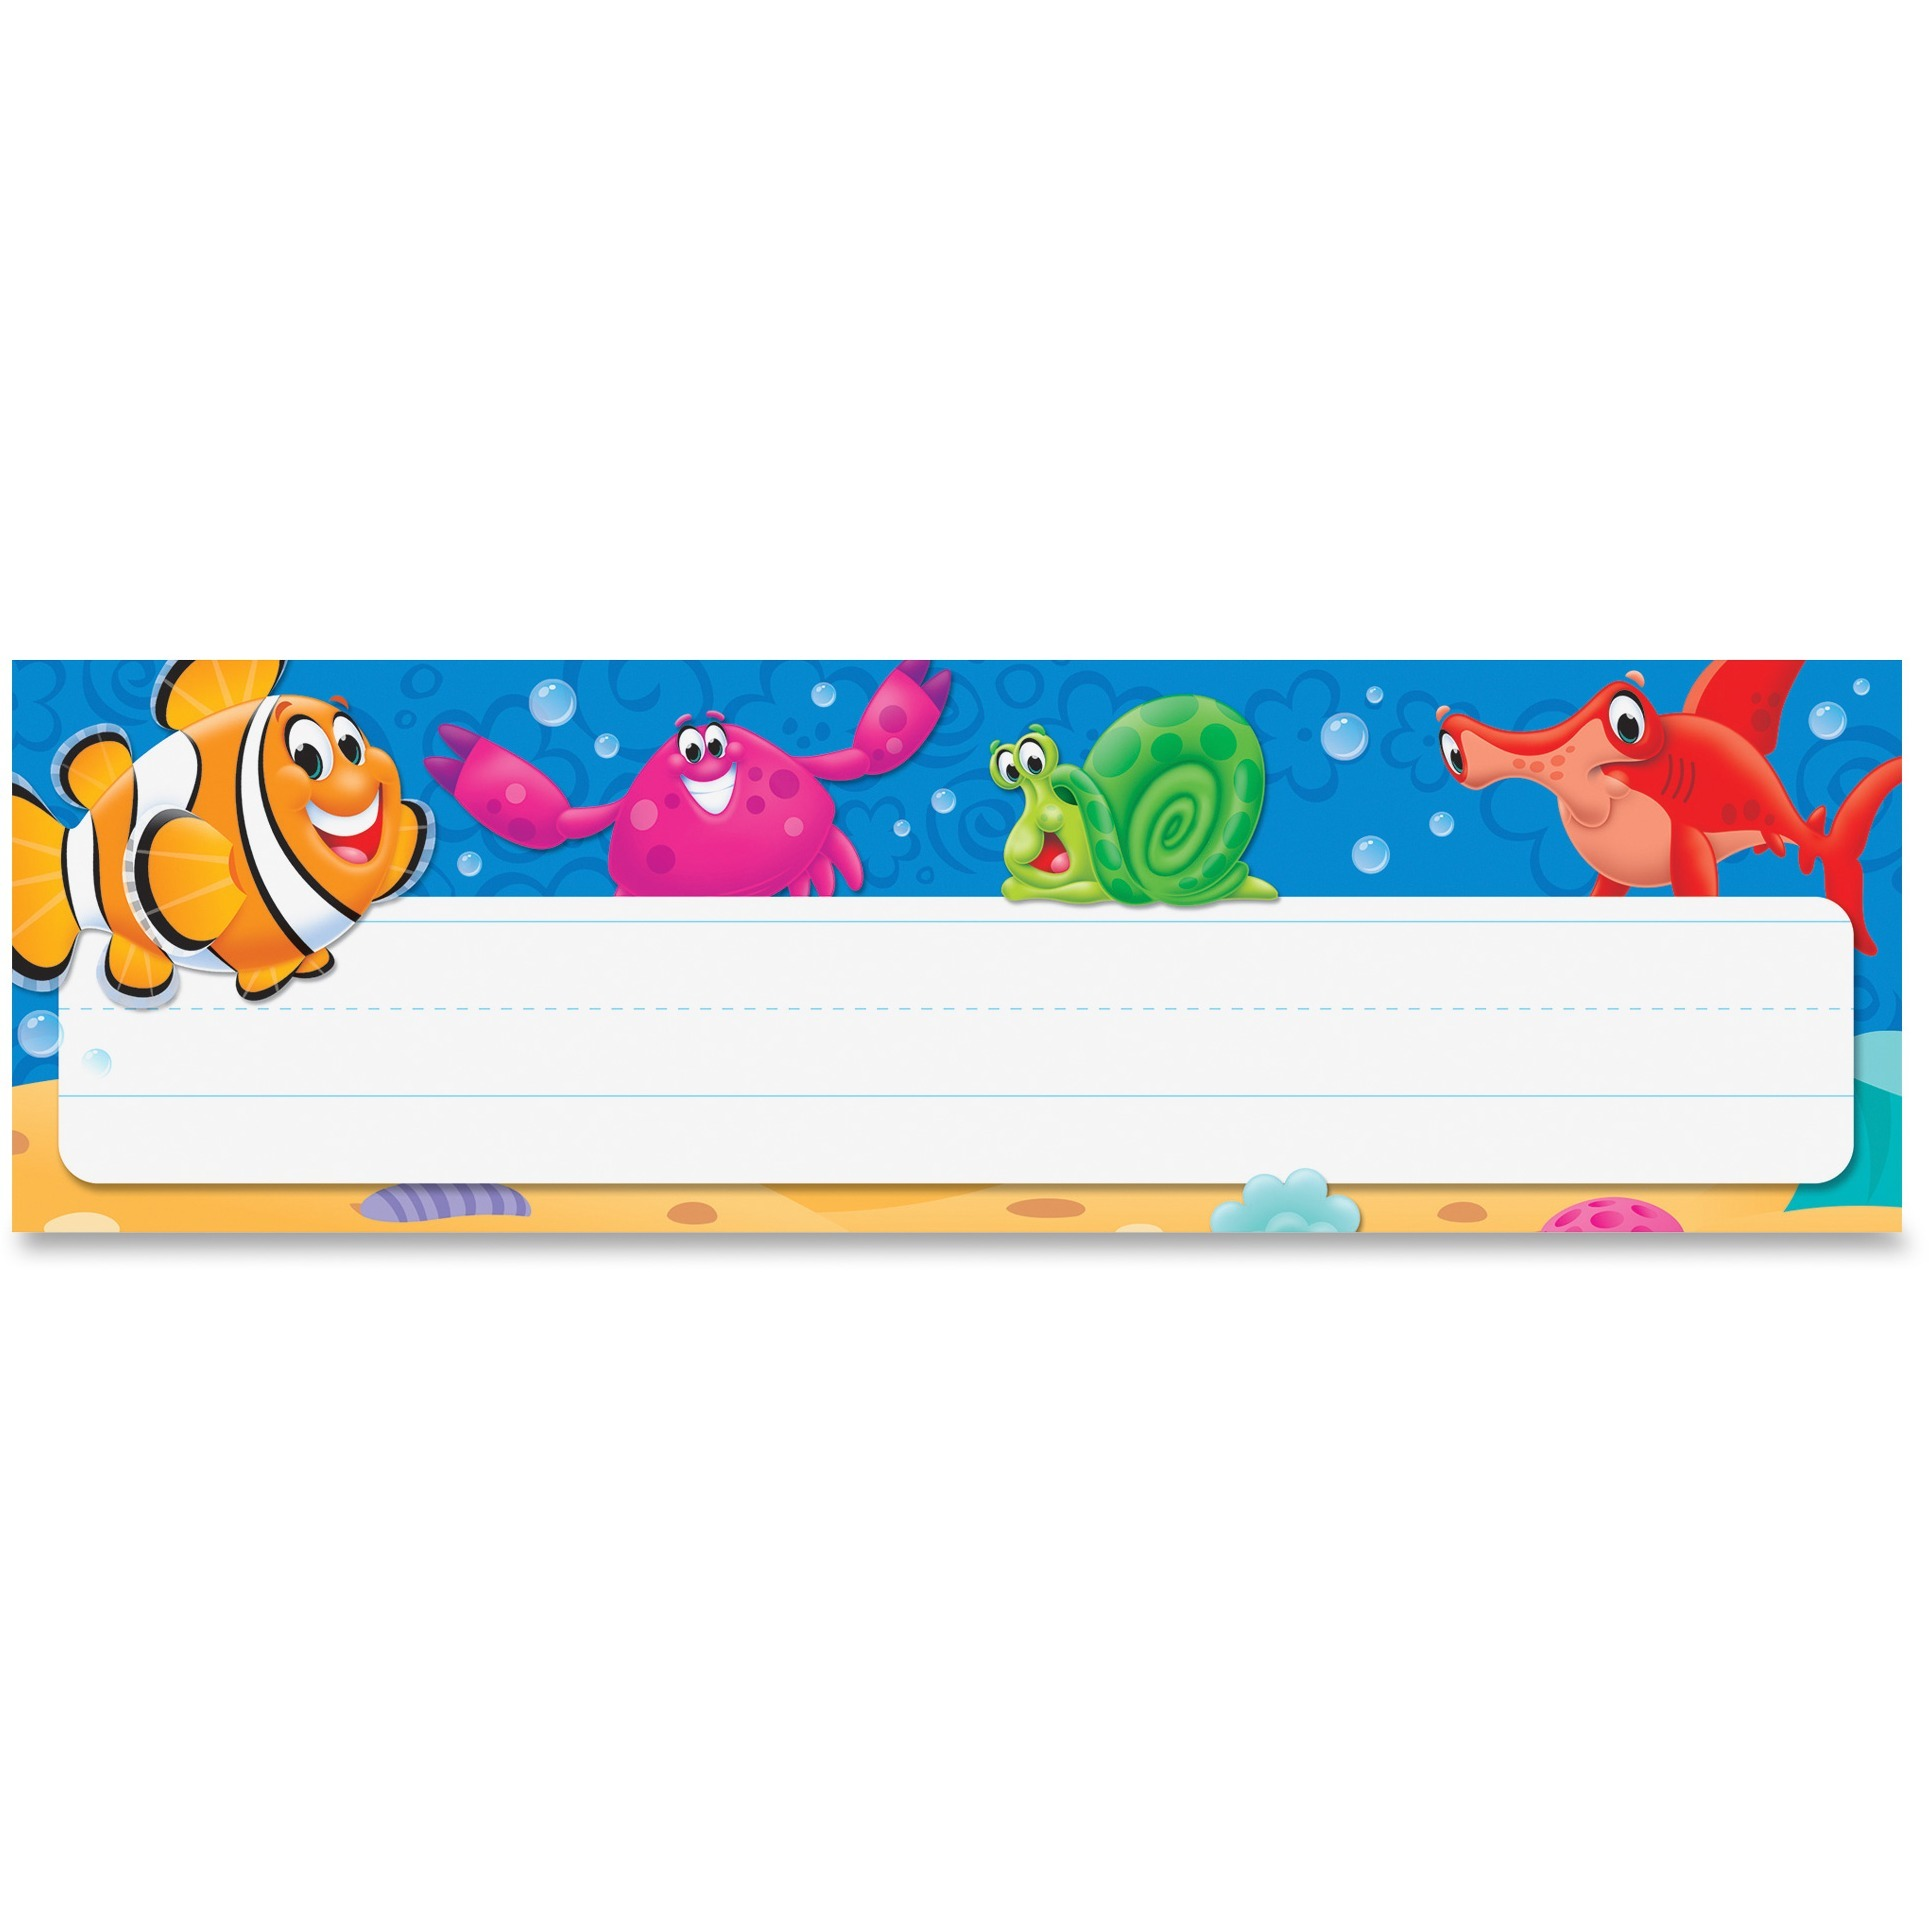 Trend, TEP69243, Sea Buddy Desk Toppers Nameplates, 36   Pack, Multicolor by Trend enterprises, Inc